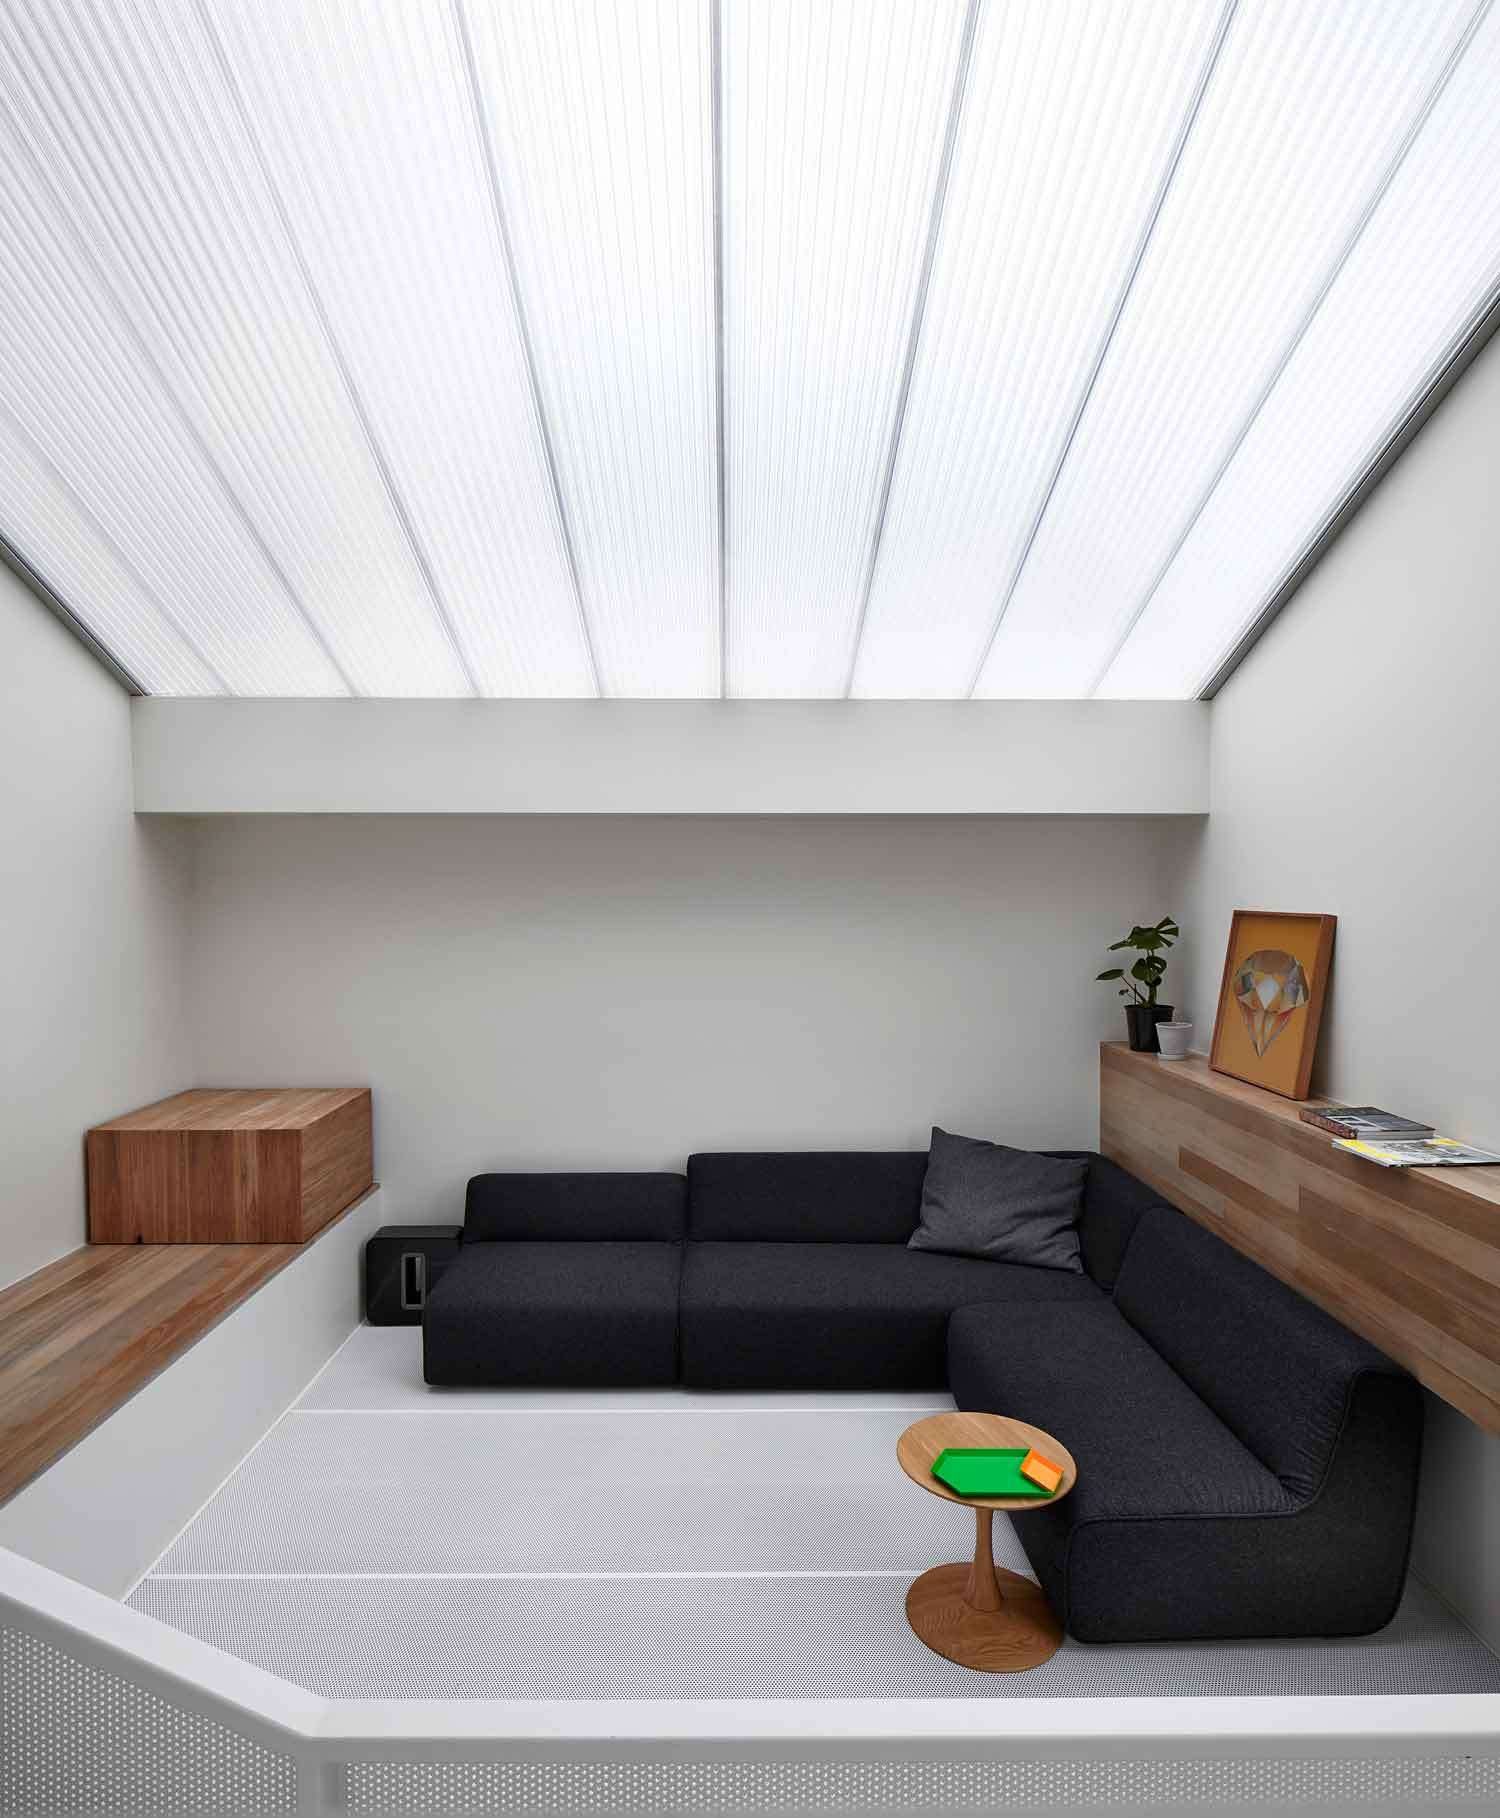 Lightbox House Perforated Floor Not As Terrifying As It